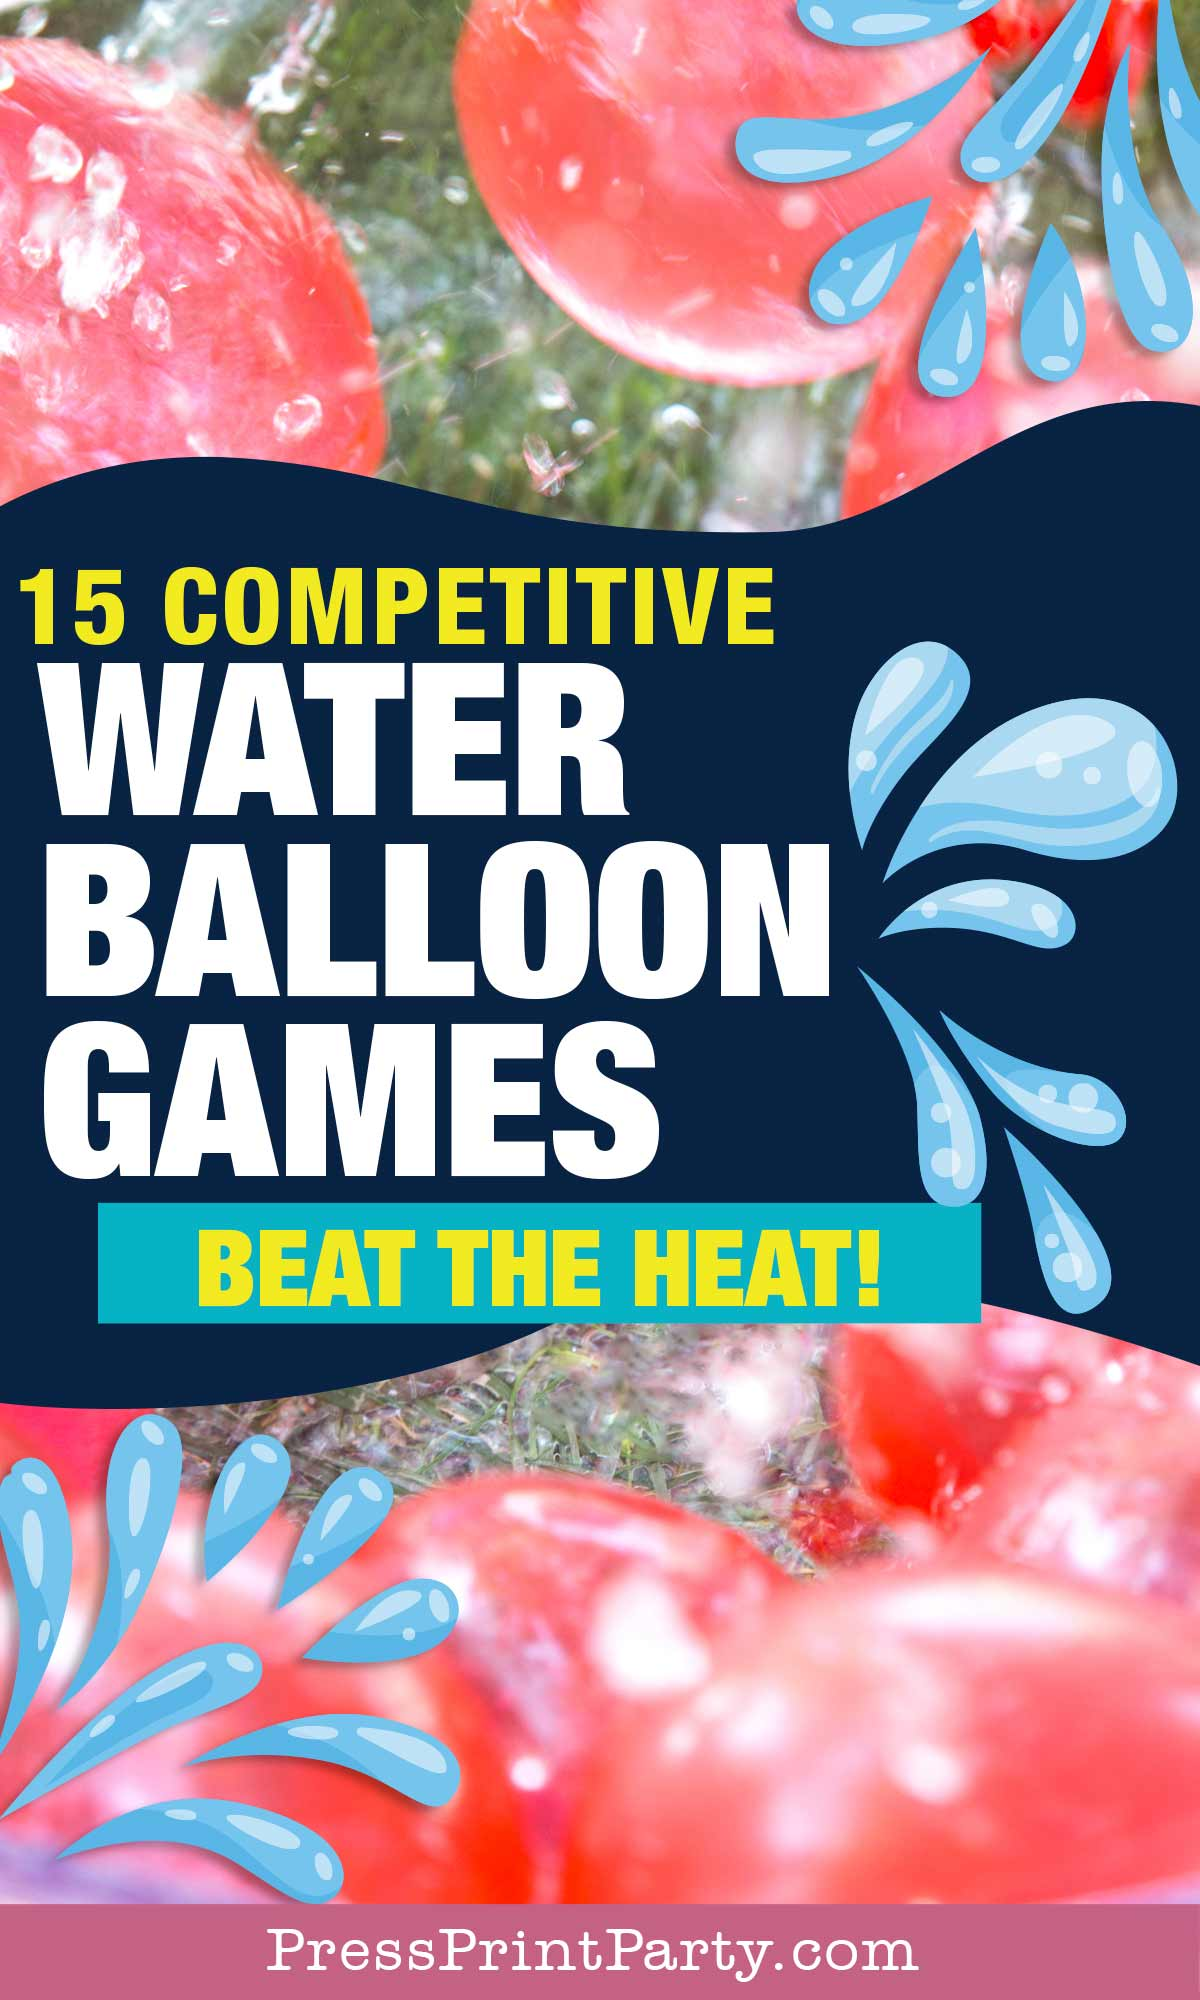 15 competitive water balloon games for teens, kids youth activies for parties, youth group, family reunions etc. Press Print Party.